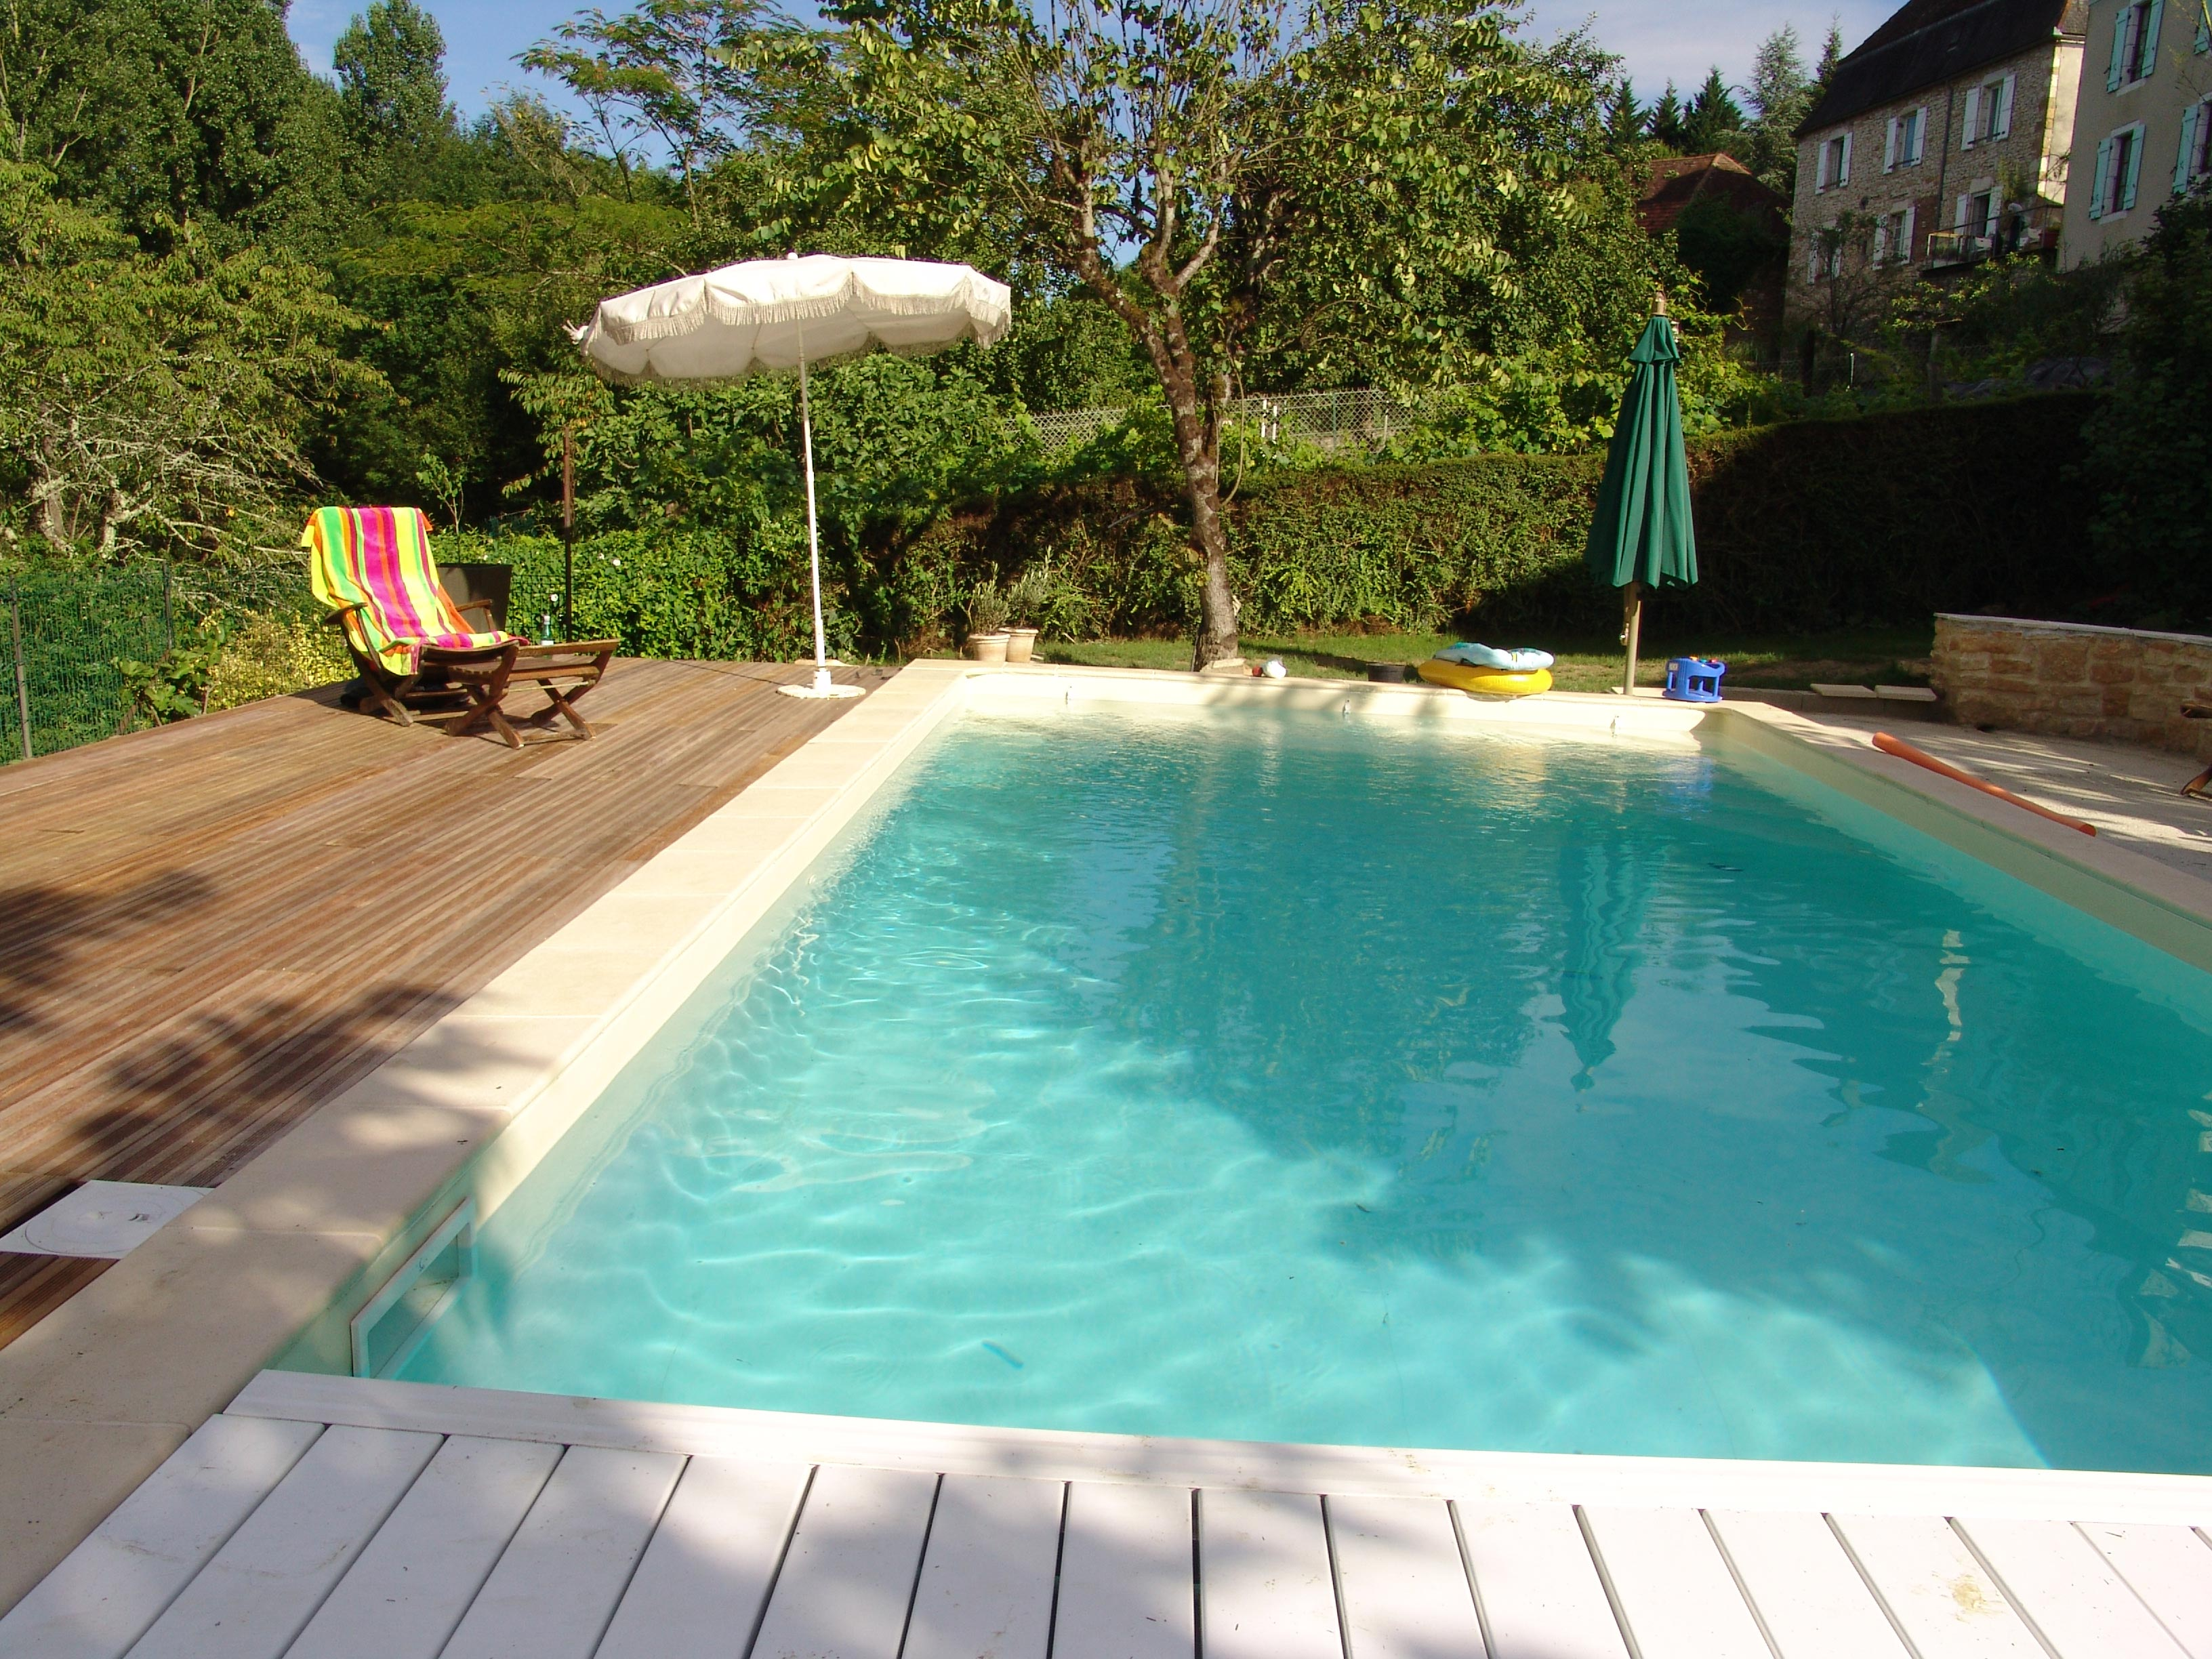 Piscine jardin images et photos arts et voyages Atmosphere agreable piscine jardin